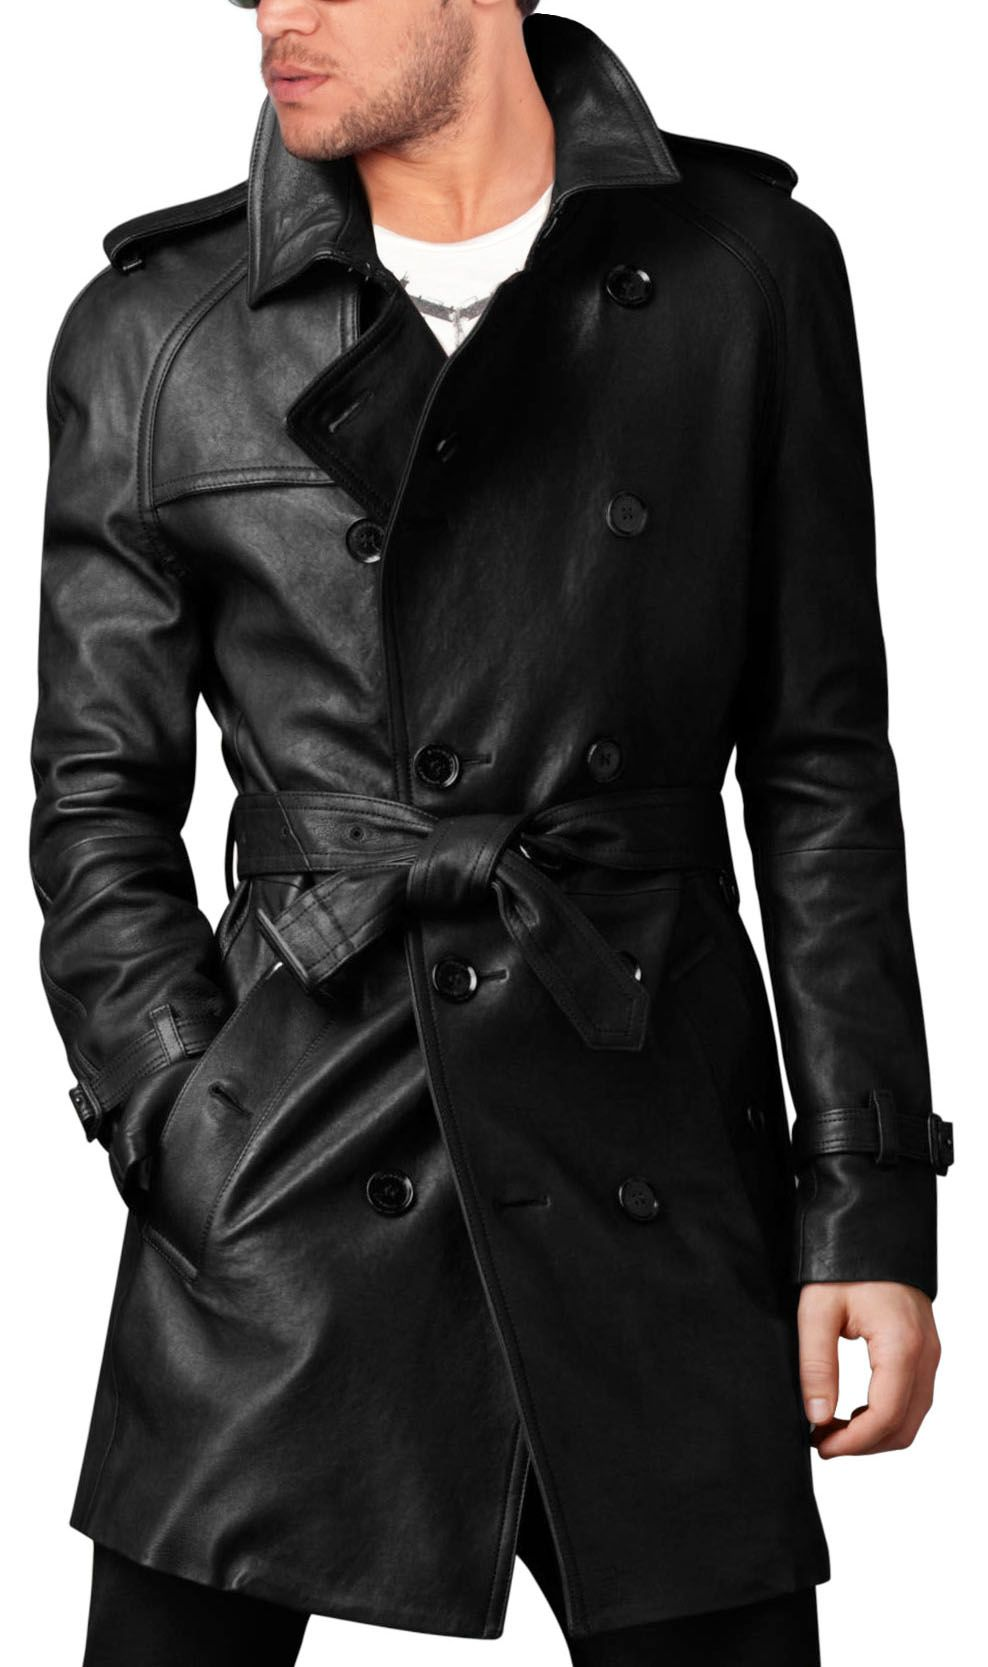 Stylish Leather Coat | Buy Men Stylish Leather Coat Online | I ...